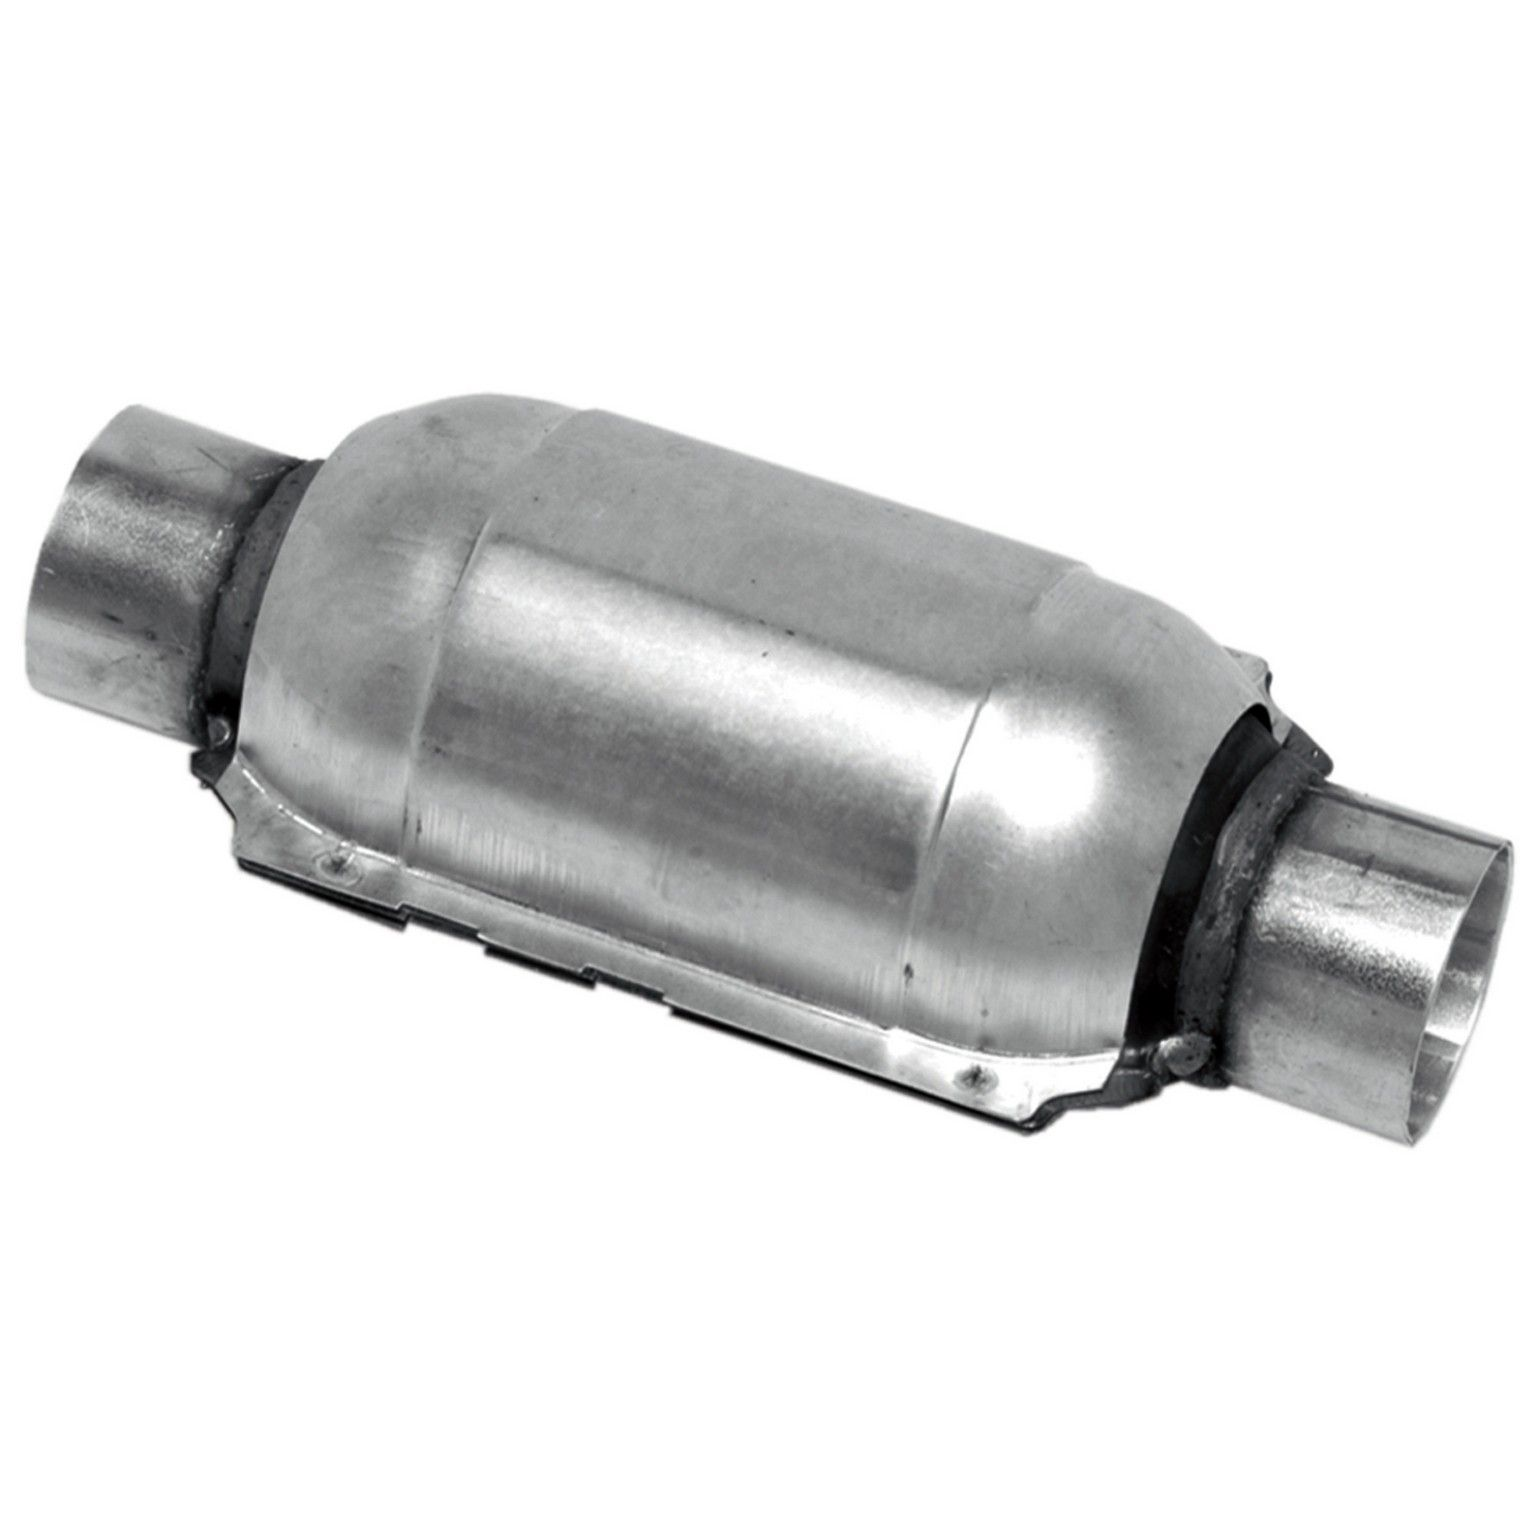 1995 Acura Integra Catalytic Converter Na 4 Cyl 18l Walker 15026 Fits Fed Calif Emiss Models Not Legal For Sale In The State Of California: 97 Acura Integra Catalytic Converter At Woreks.co